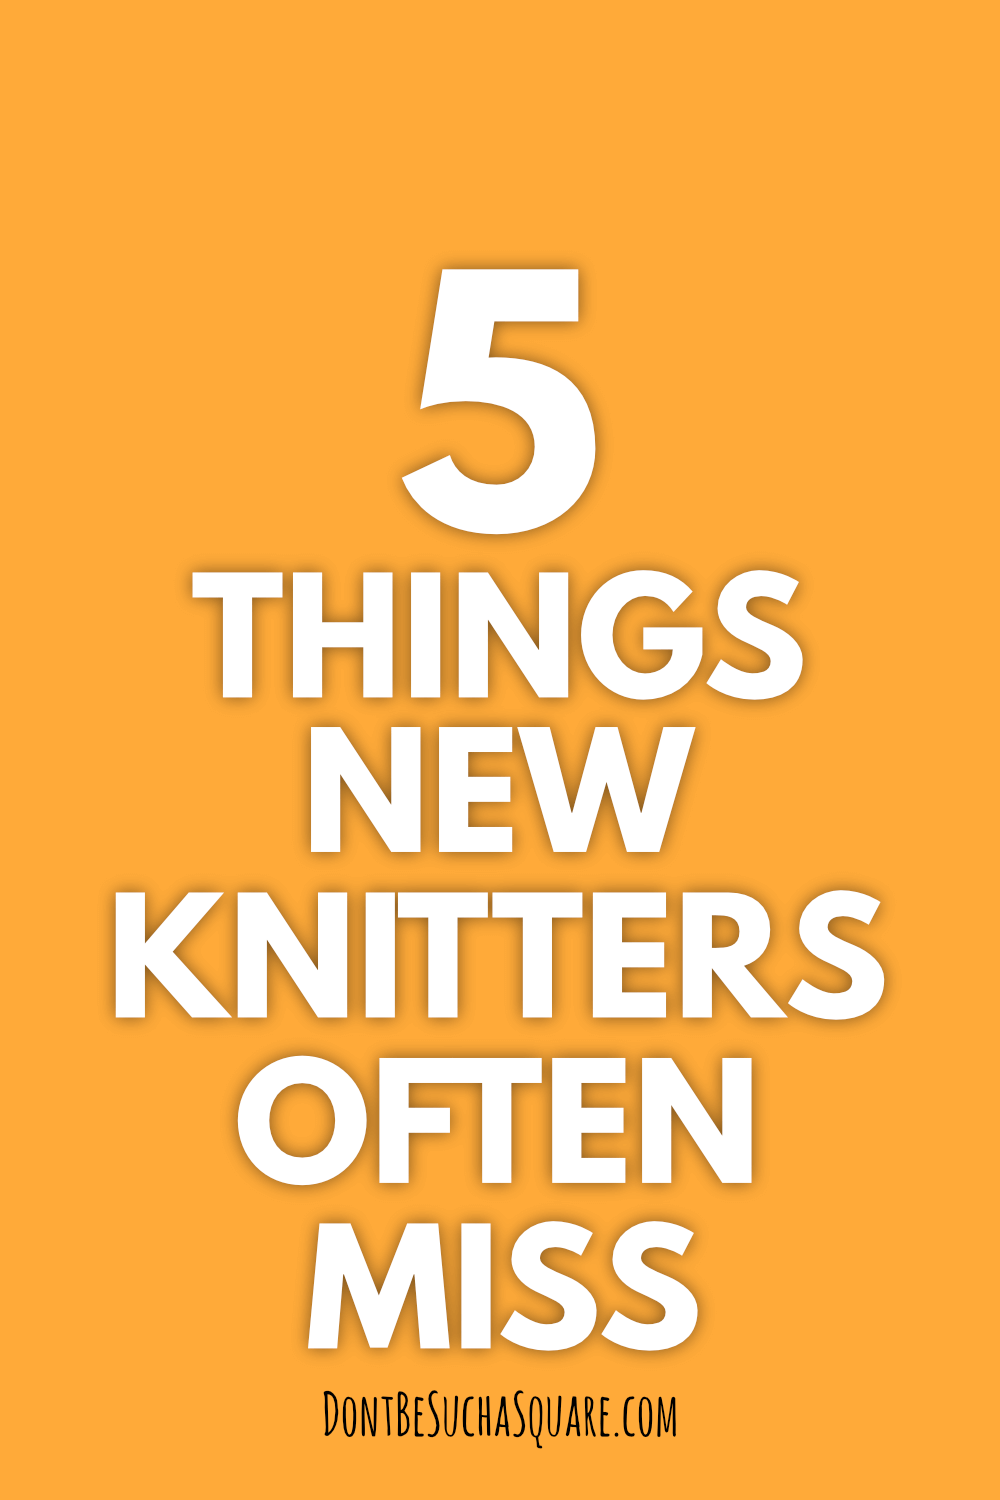 a graphic with the text 5 things new knitters often miss